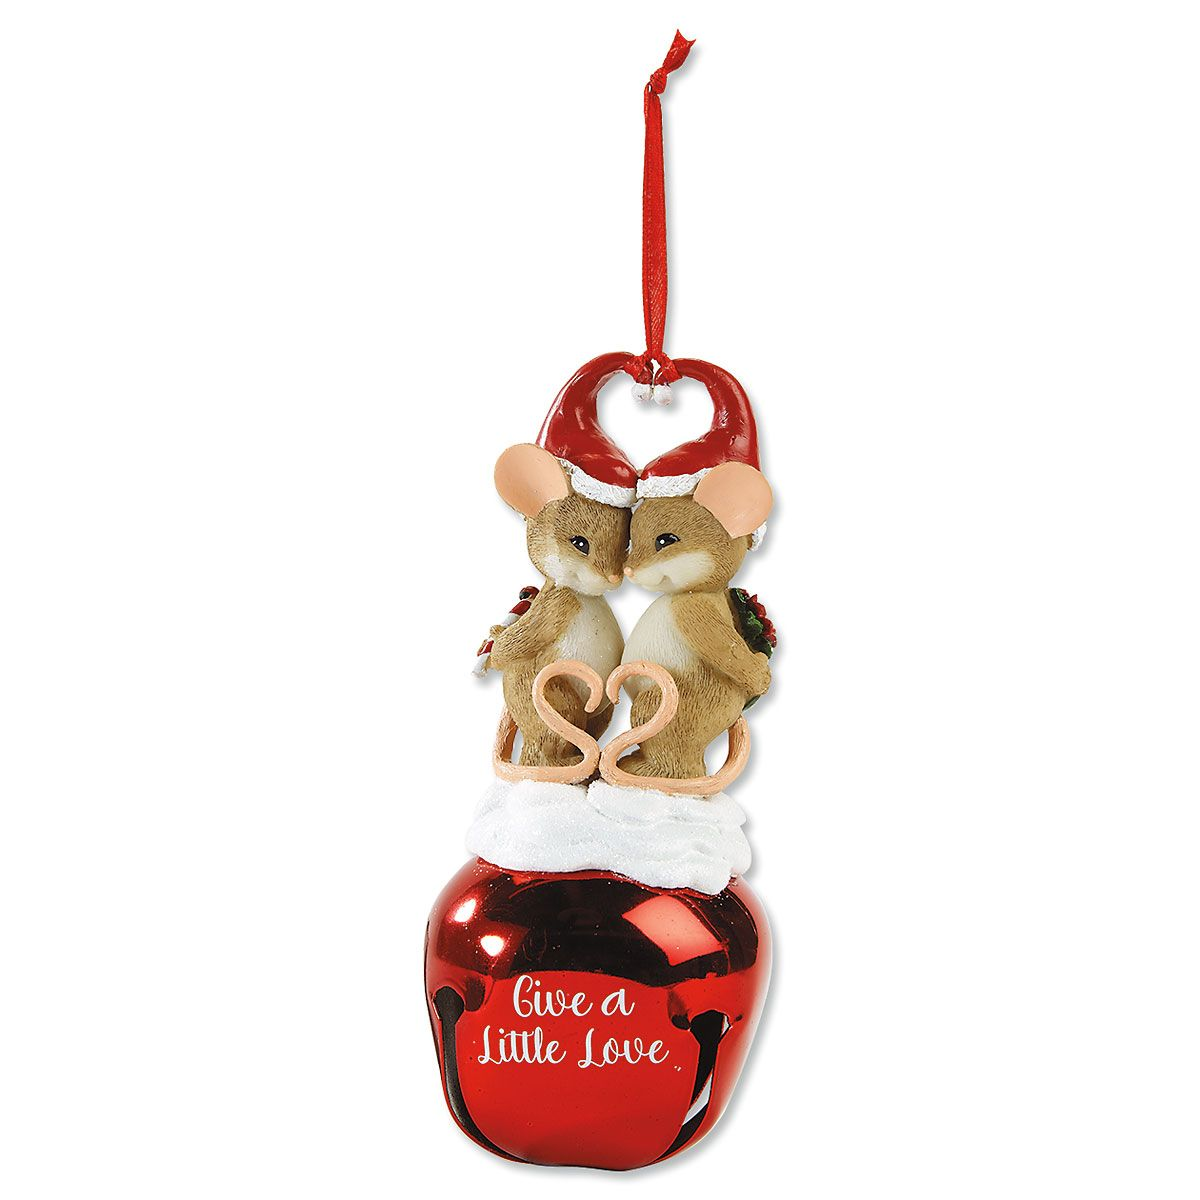 Give a Little Love Ornament by Charming Tails®